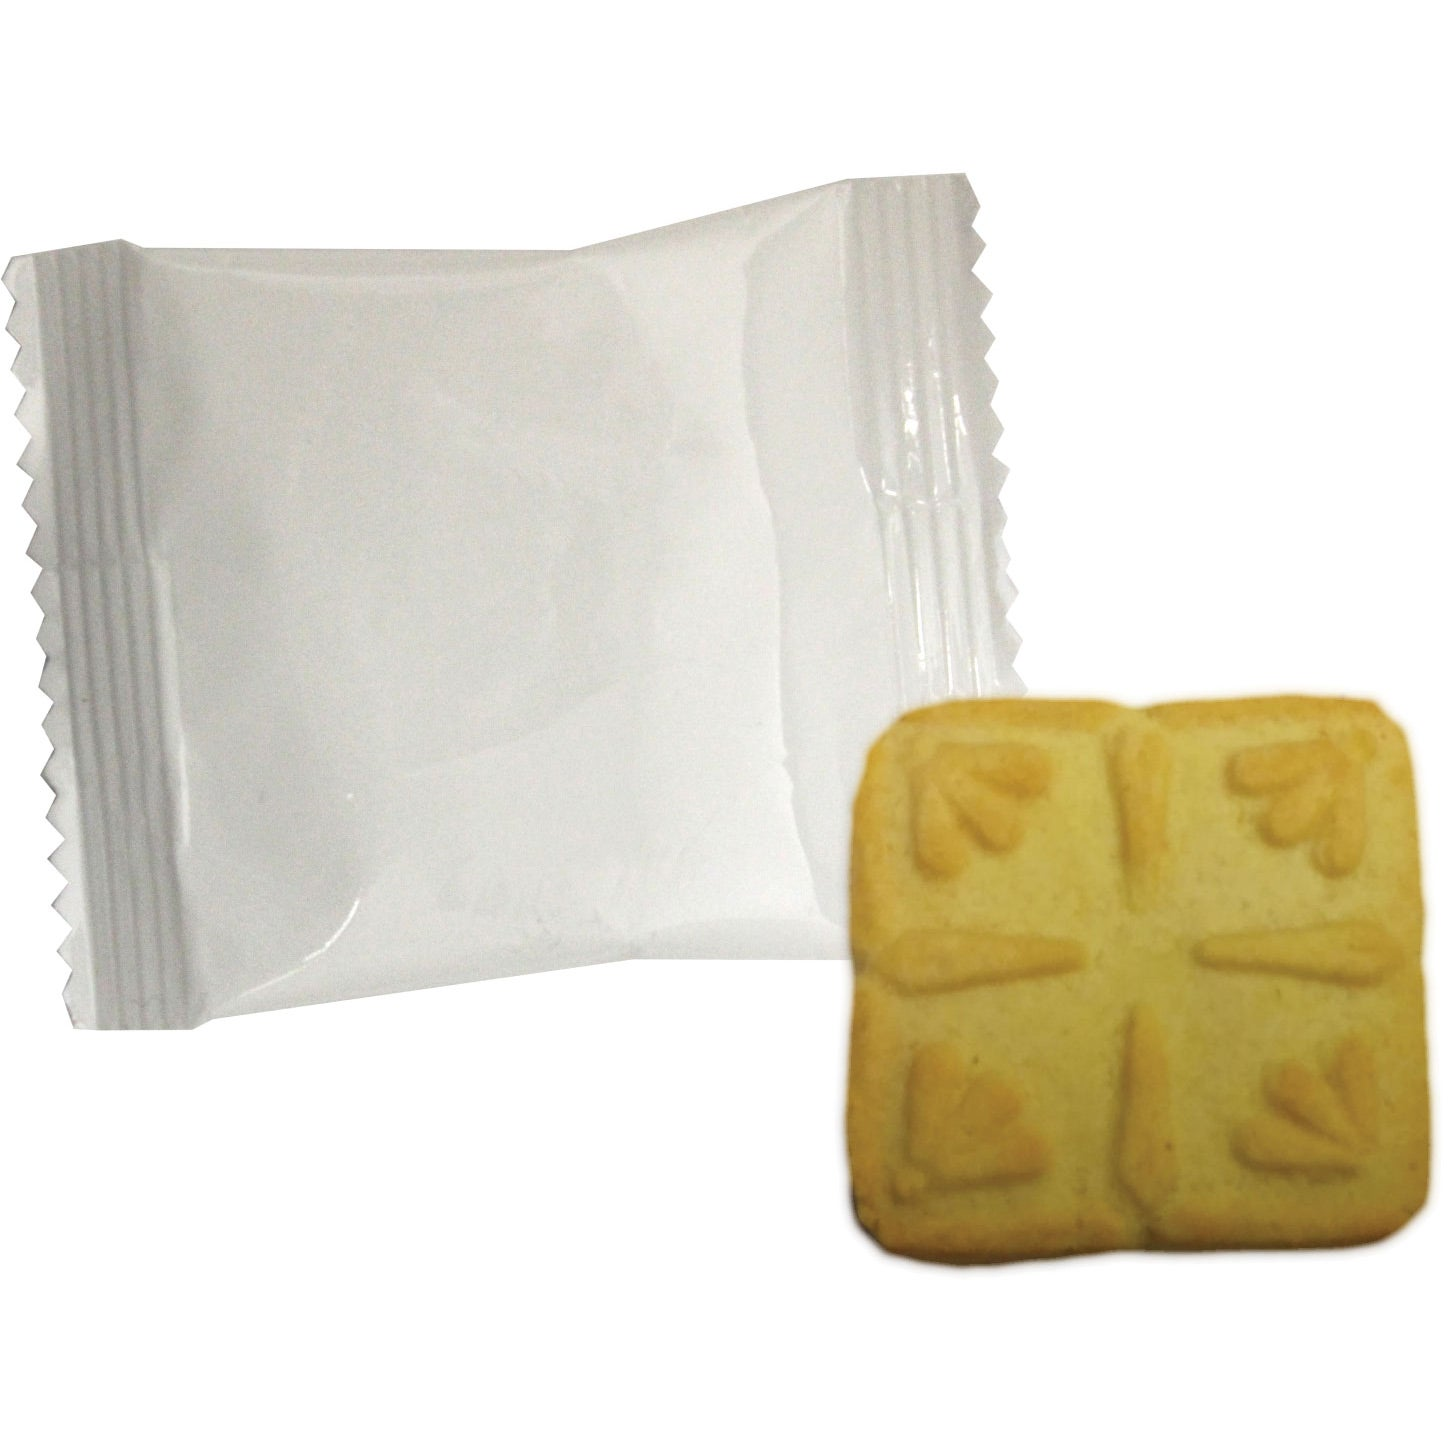 decorated shortbread cookies.htm shortbread cookies  2 125  x 3 5   custom dry snacks quality  shortbread cookies  2 125  x 3 5